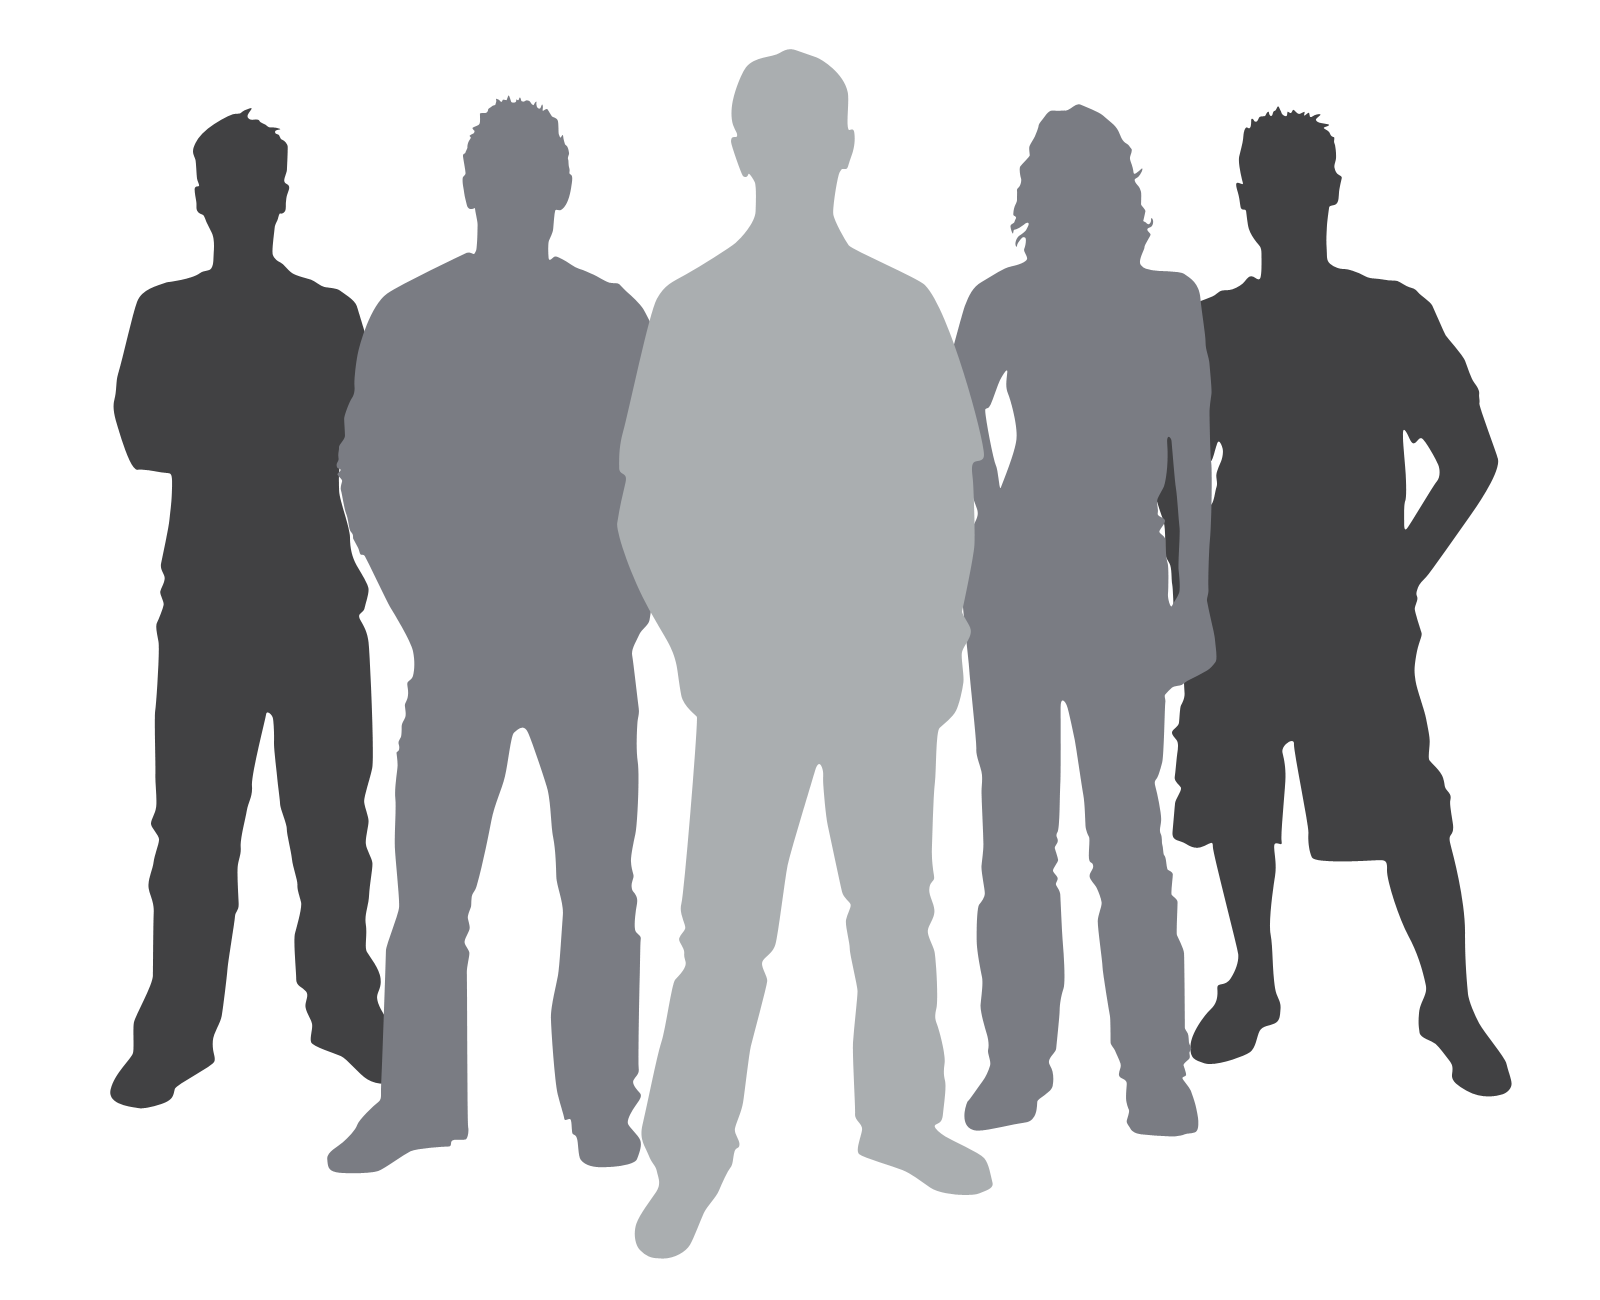 Business Silhouette - ClipArt Best